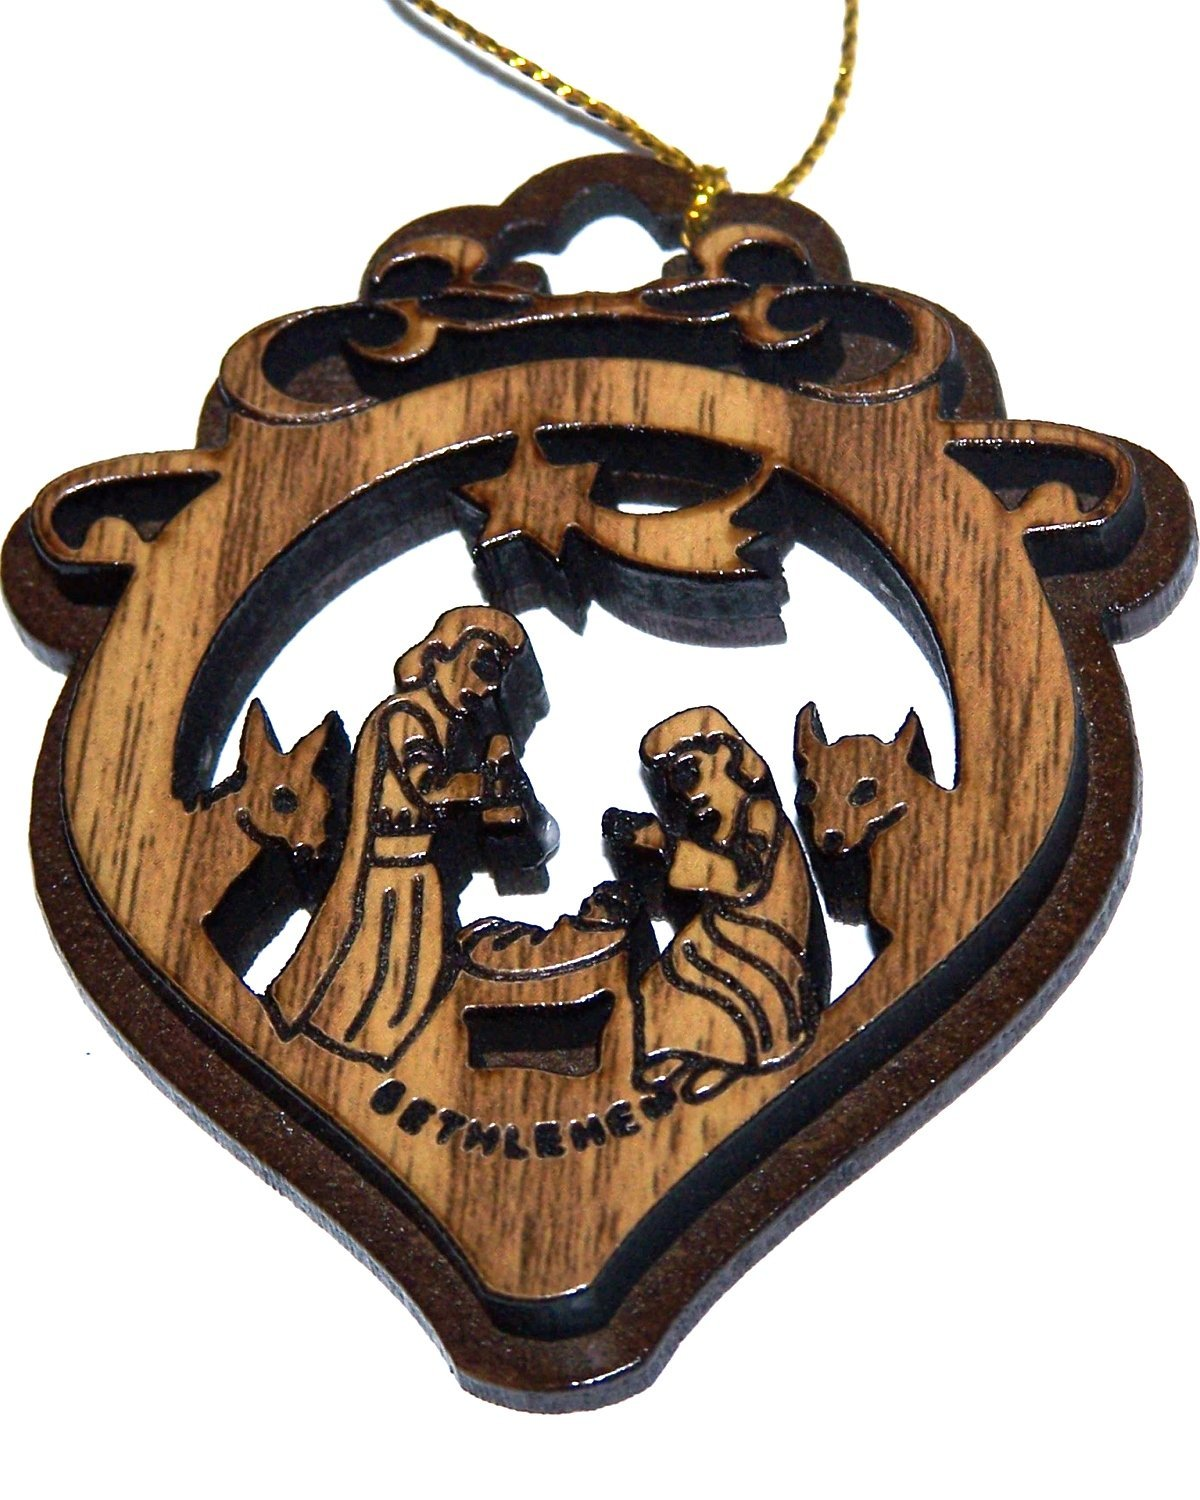 Two Layers Mahogany with Olive Wood Holy Family Nativity Scene Ornament Gift Carved by Laser - Olive Wood (7 cm or 2.8 inch with Certificate) and Gold String